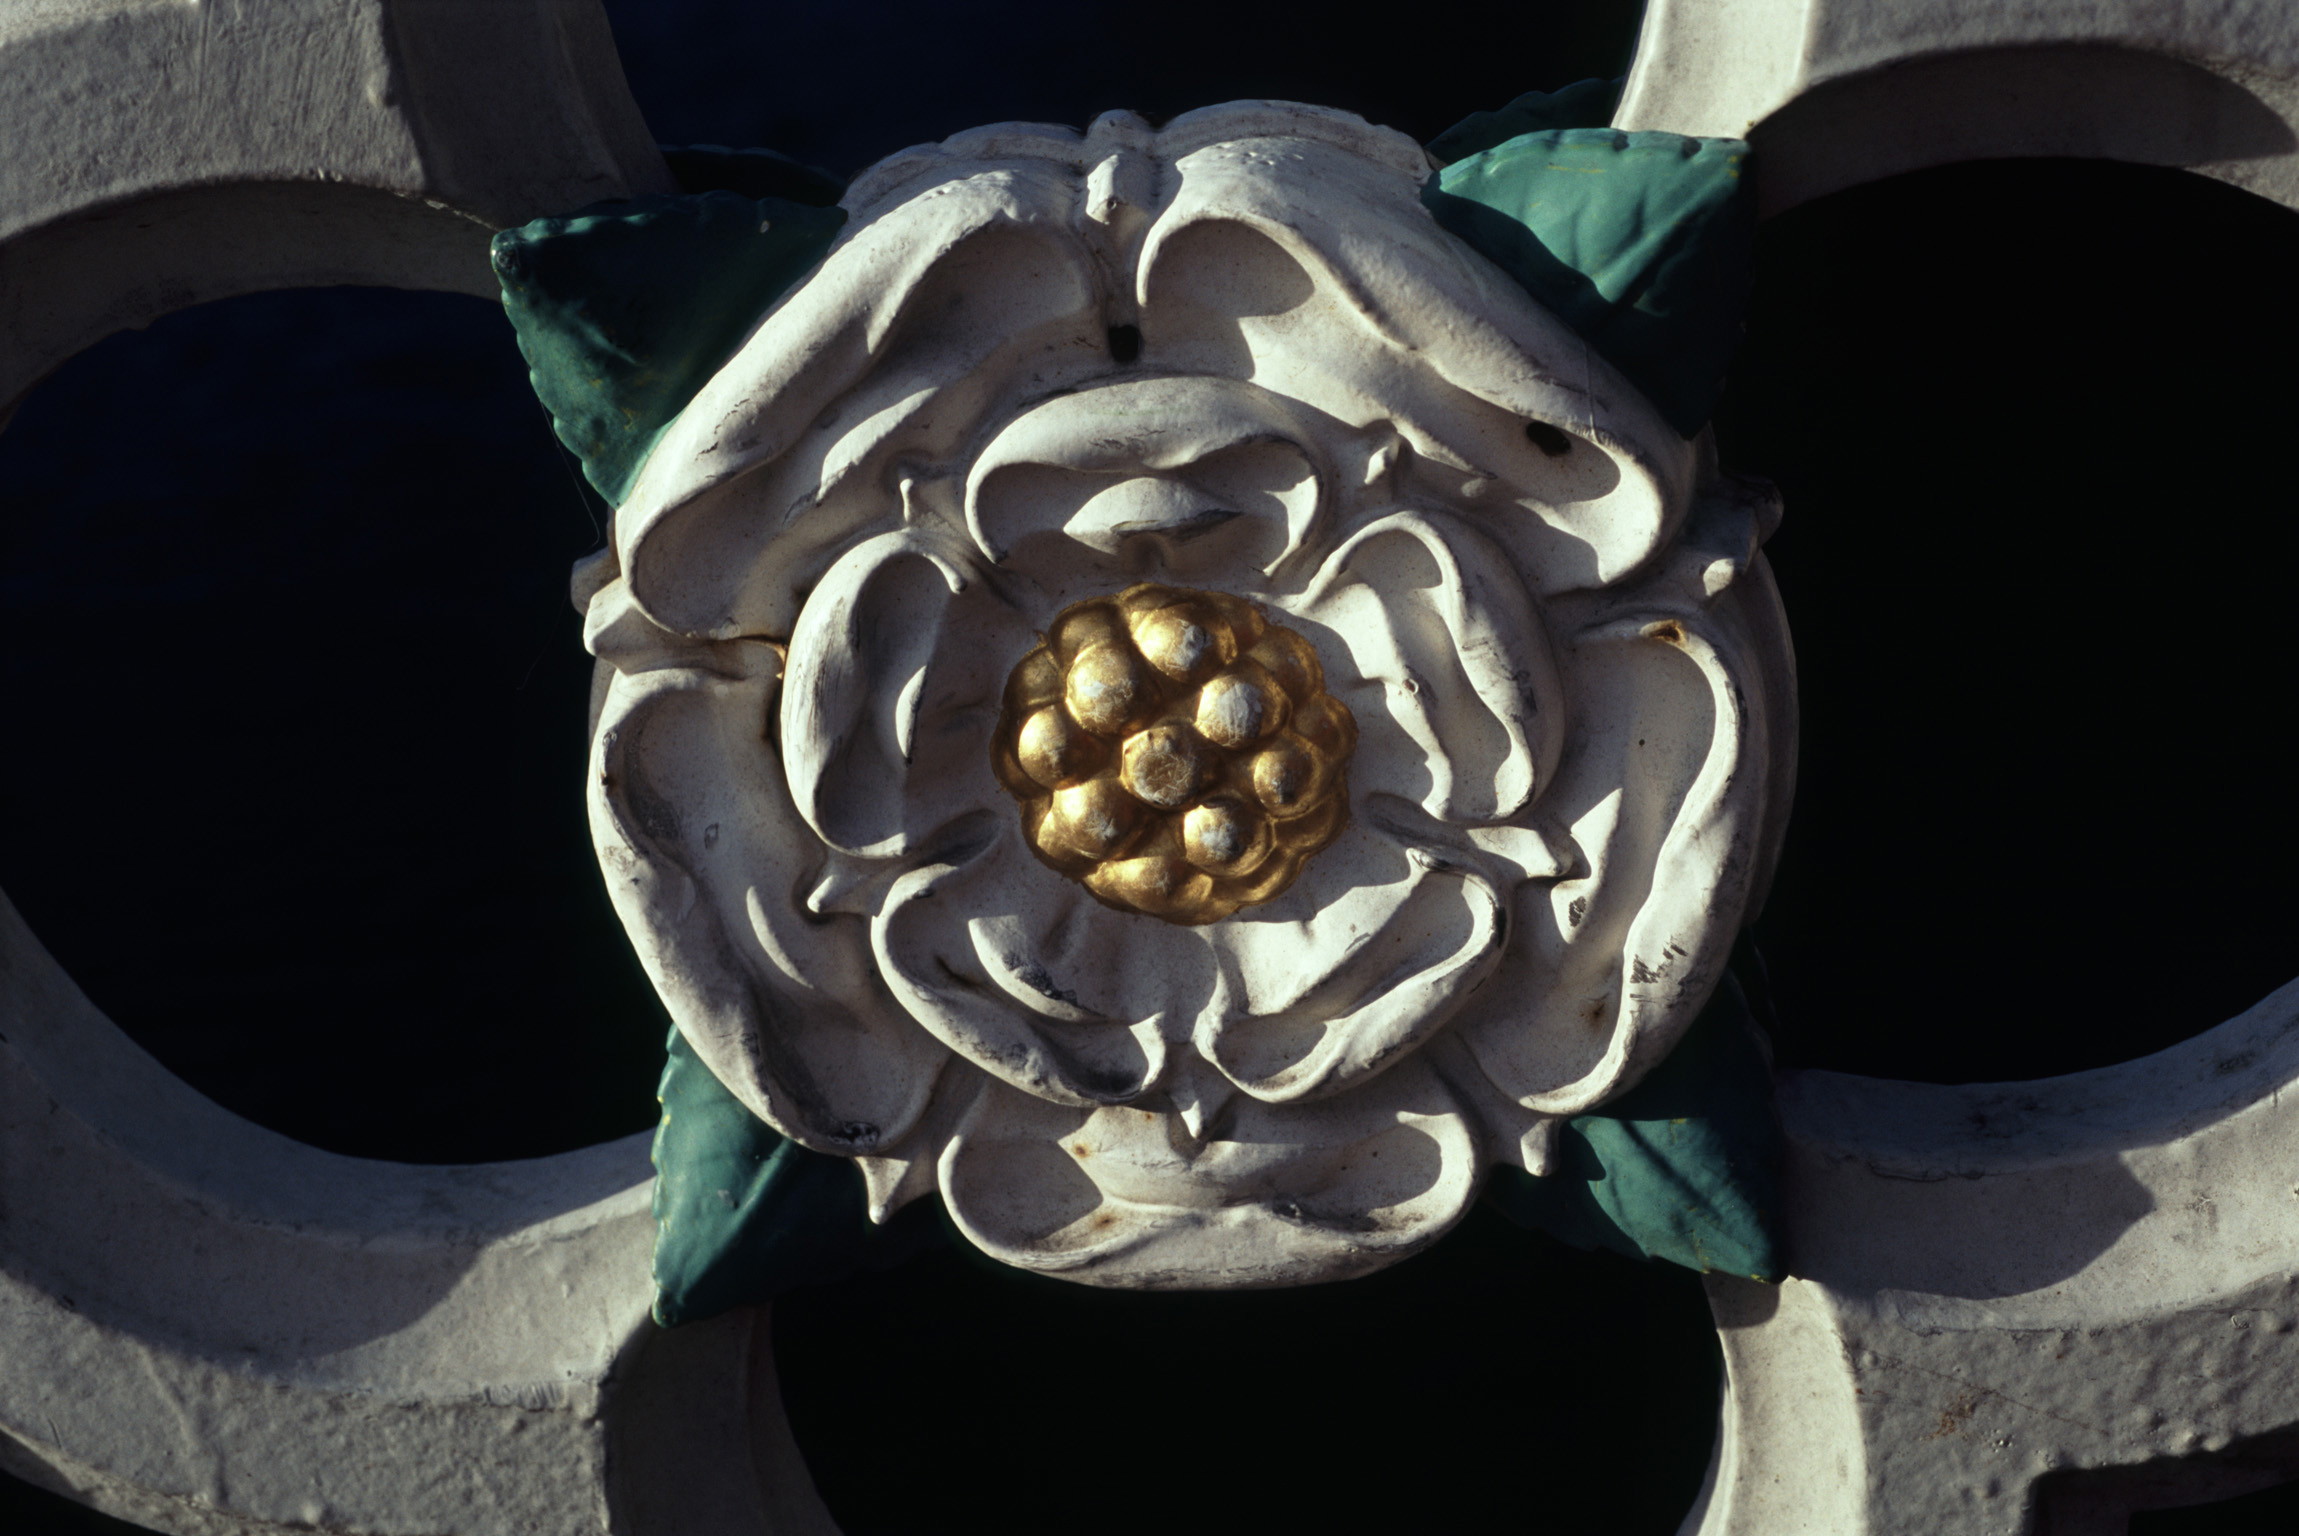 Close up Simple Vintage White Rose Sculpture at Minister Rose Window with Black Background.